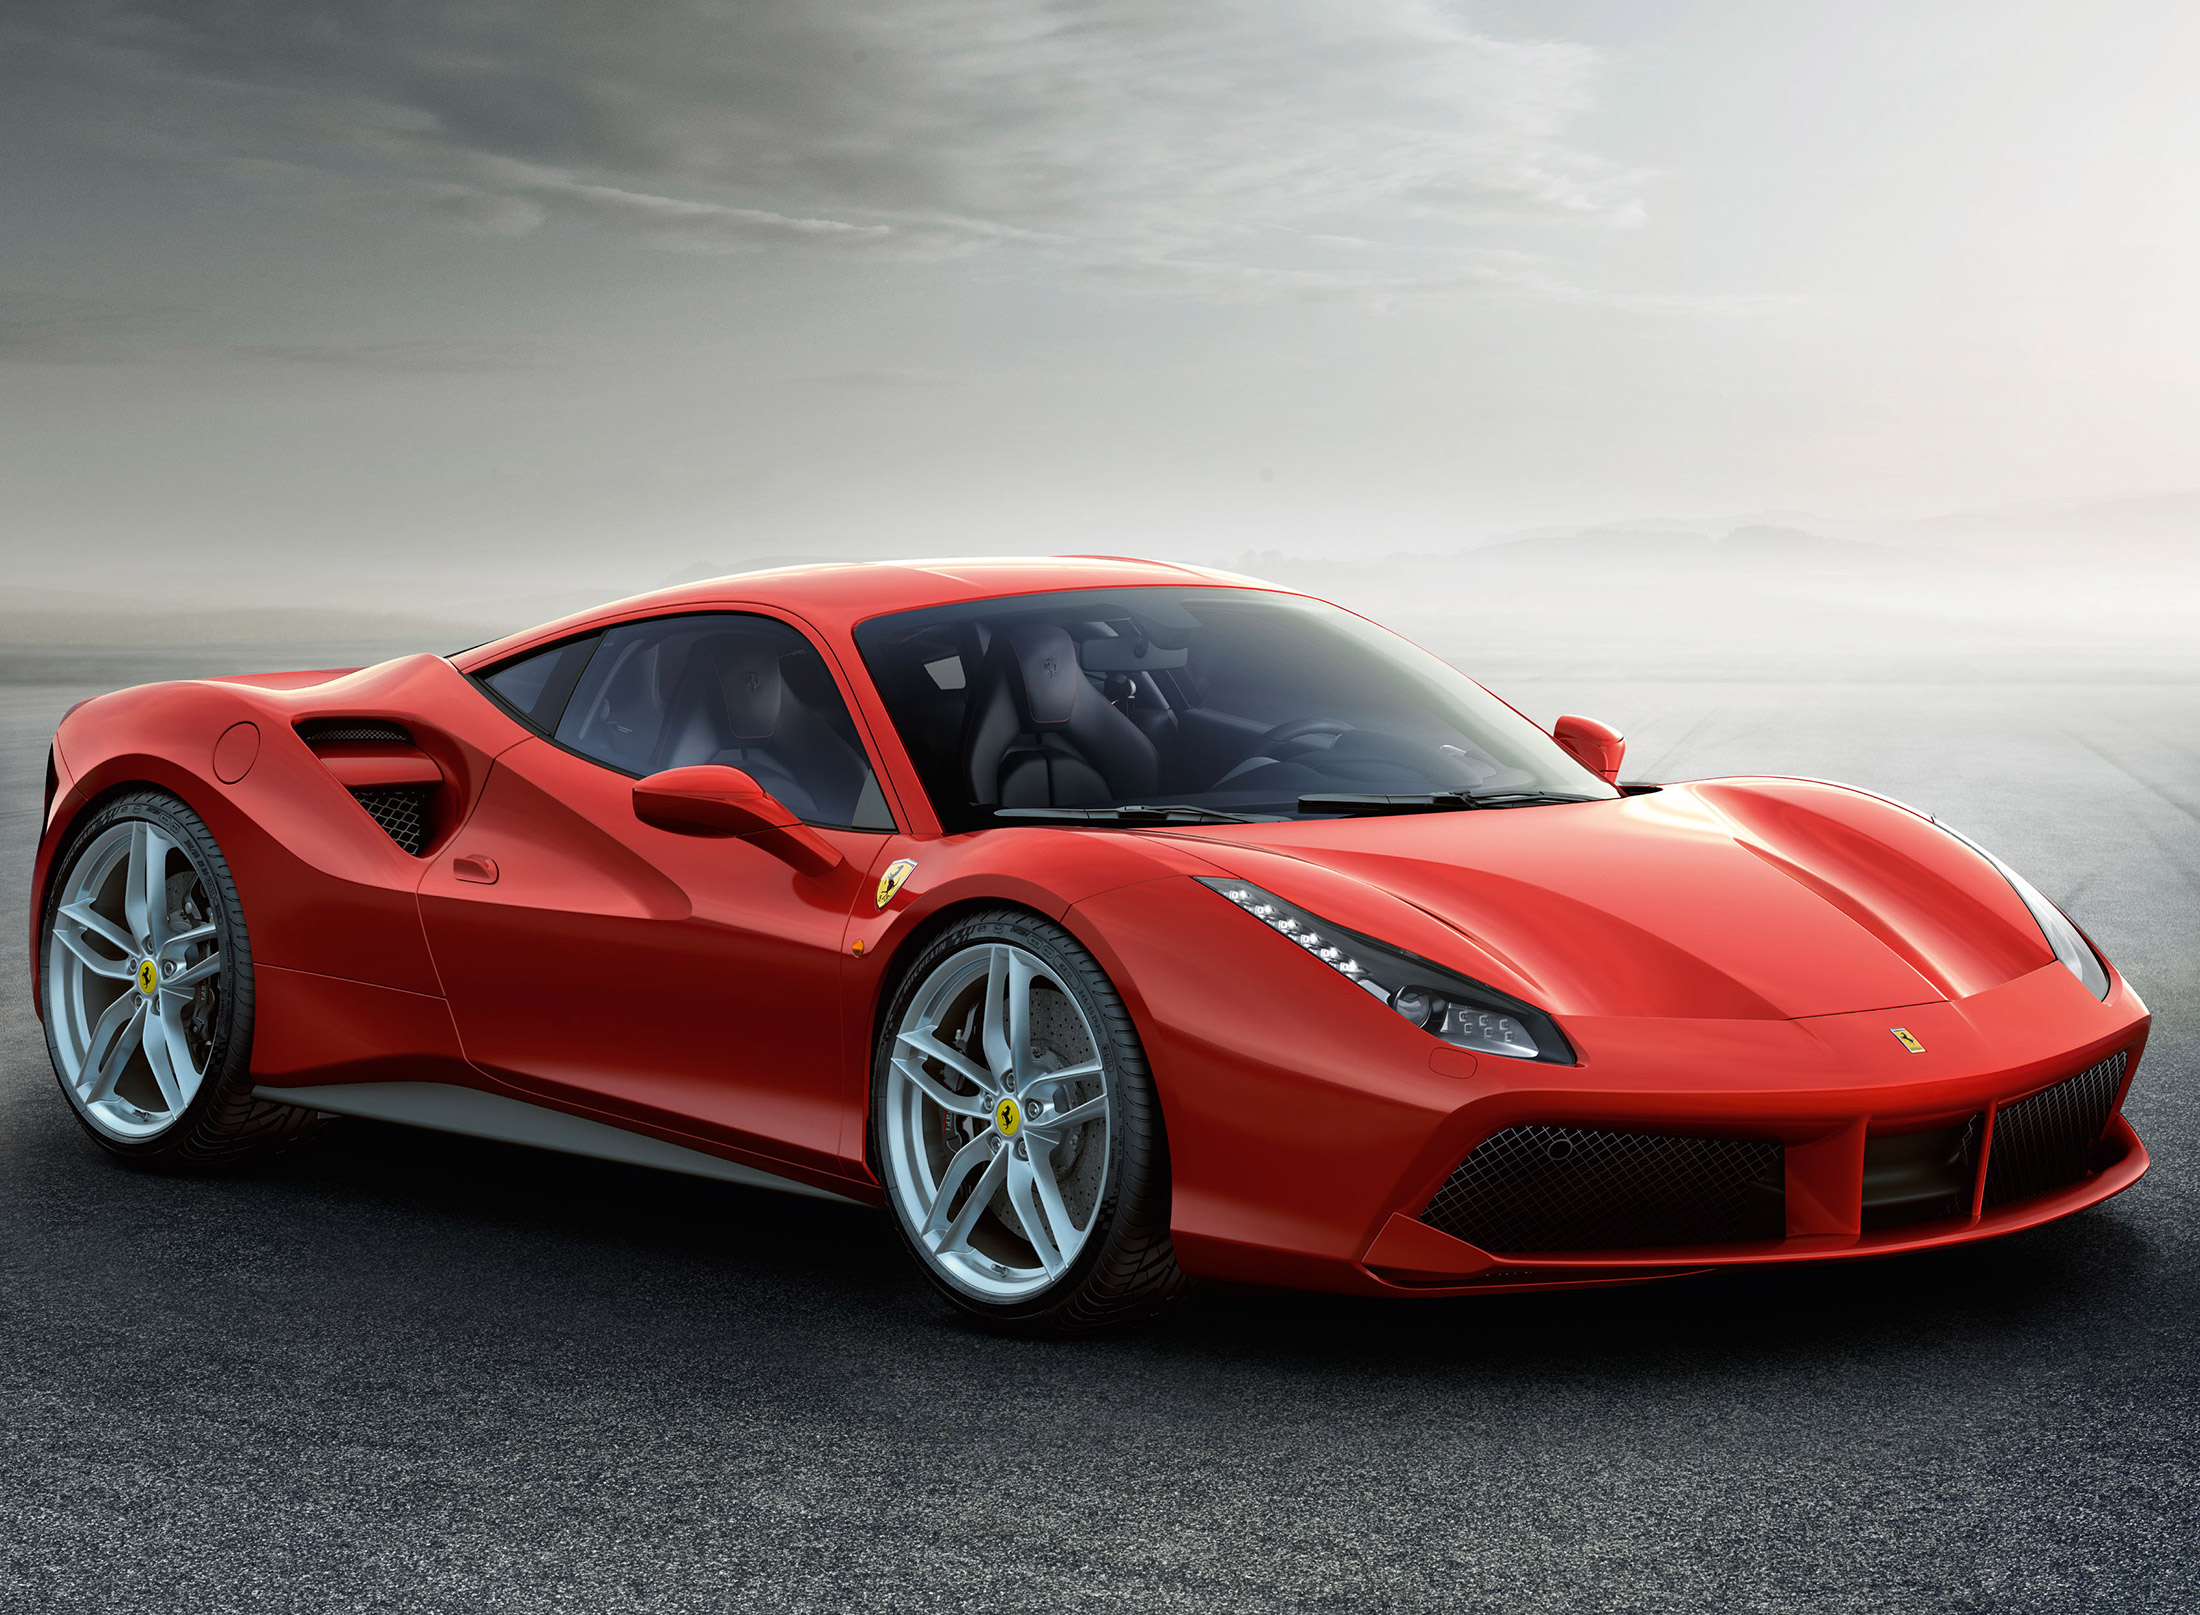 The more powerful and greener Ferari 488 GTB